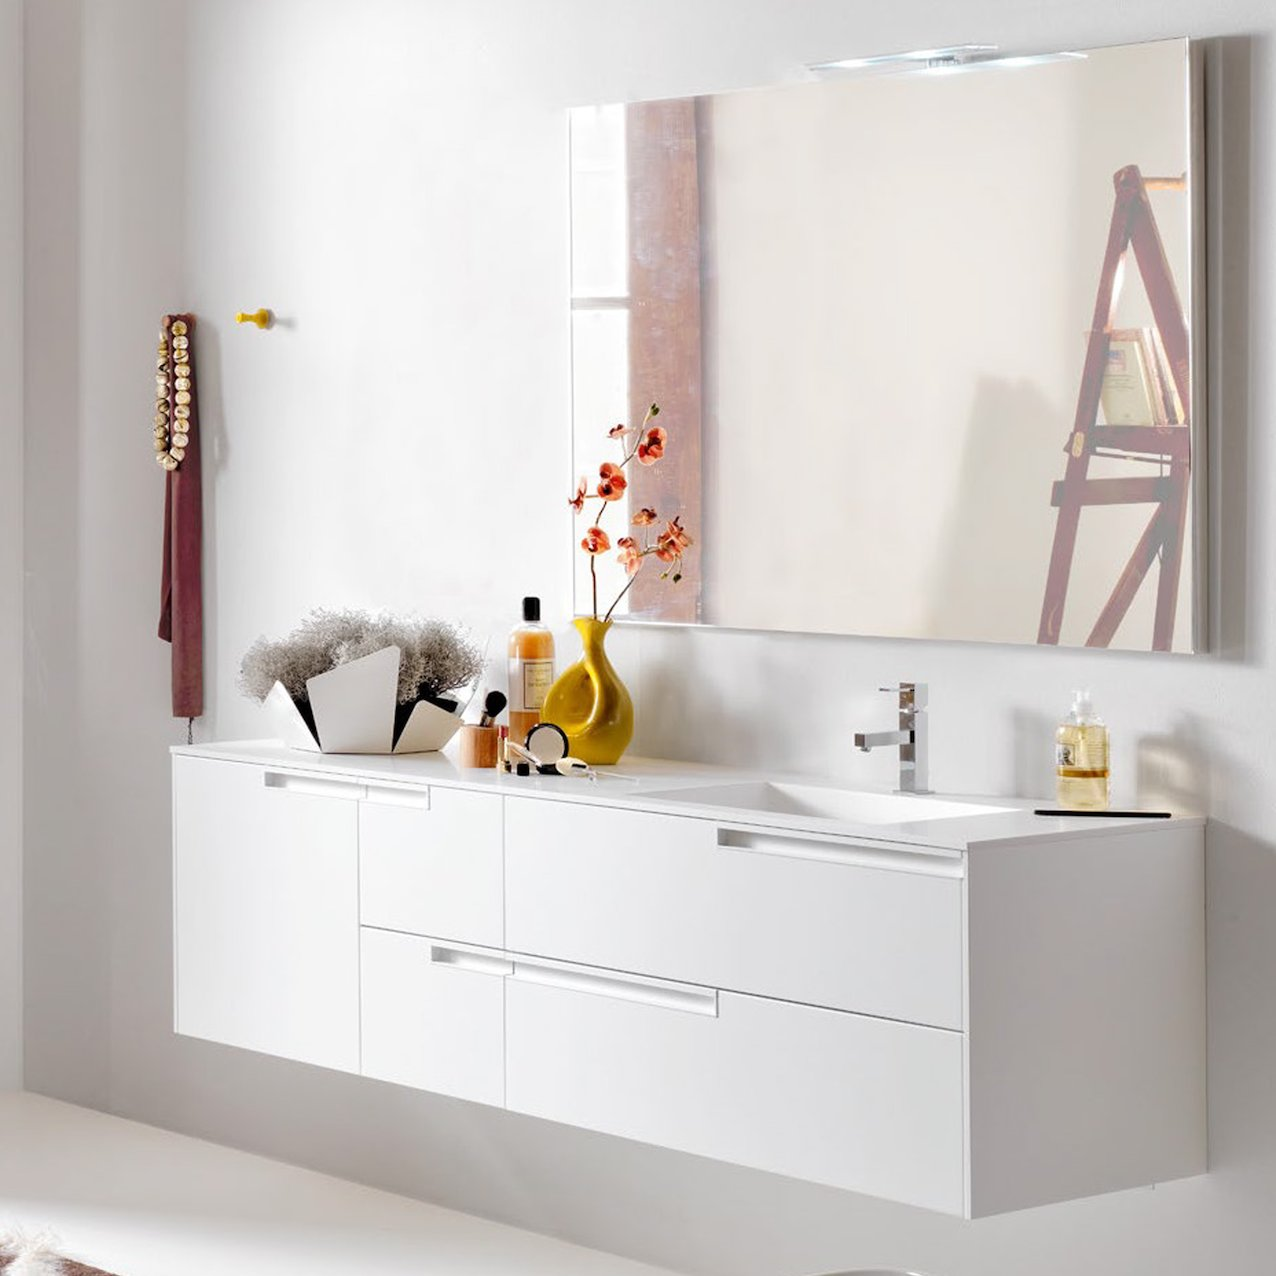 Kiele Bathroom Furniture